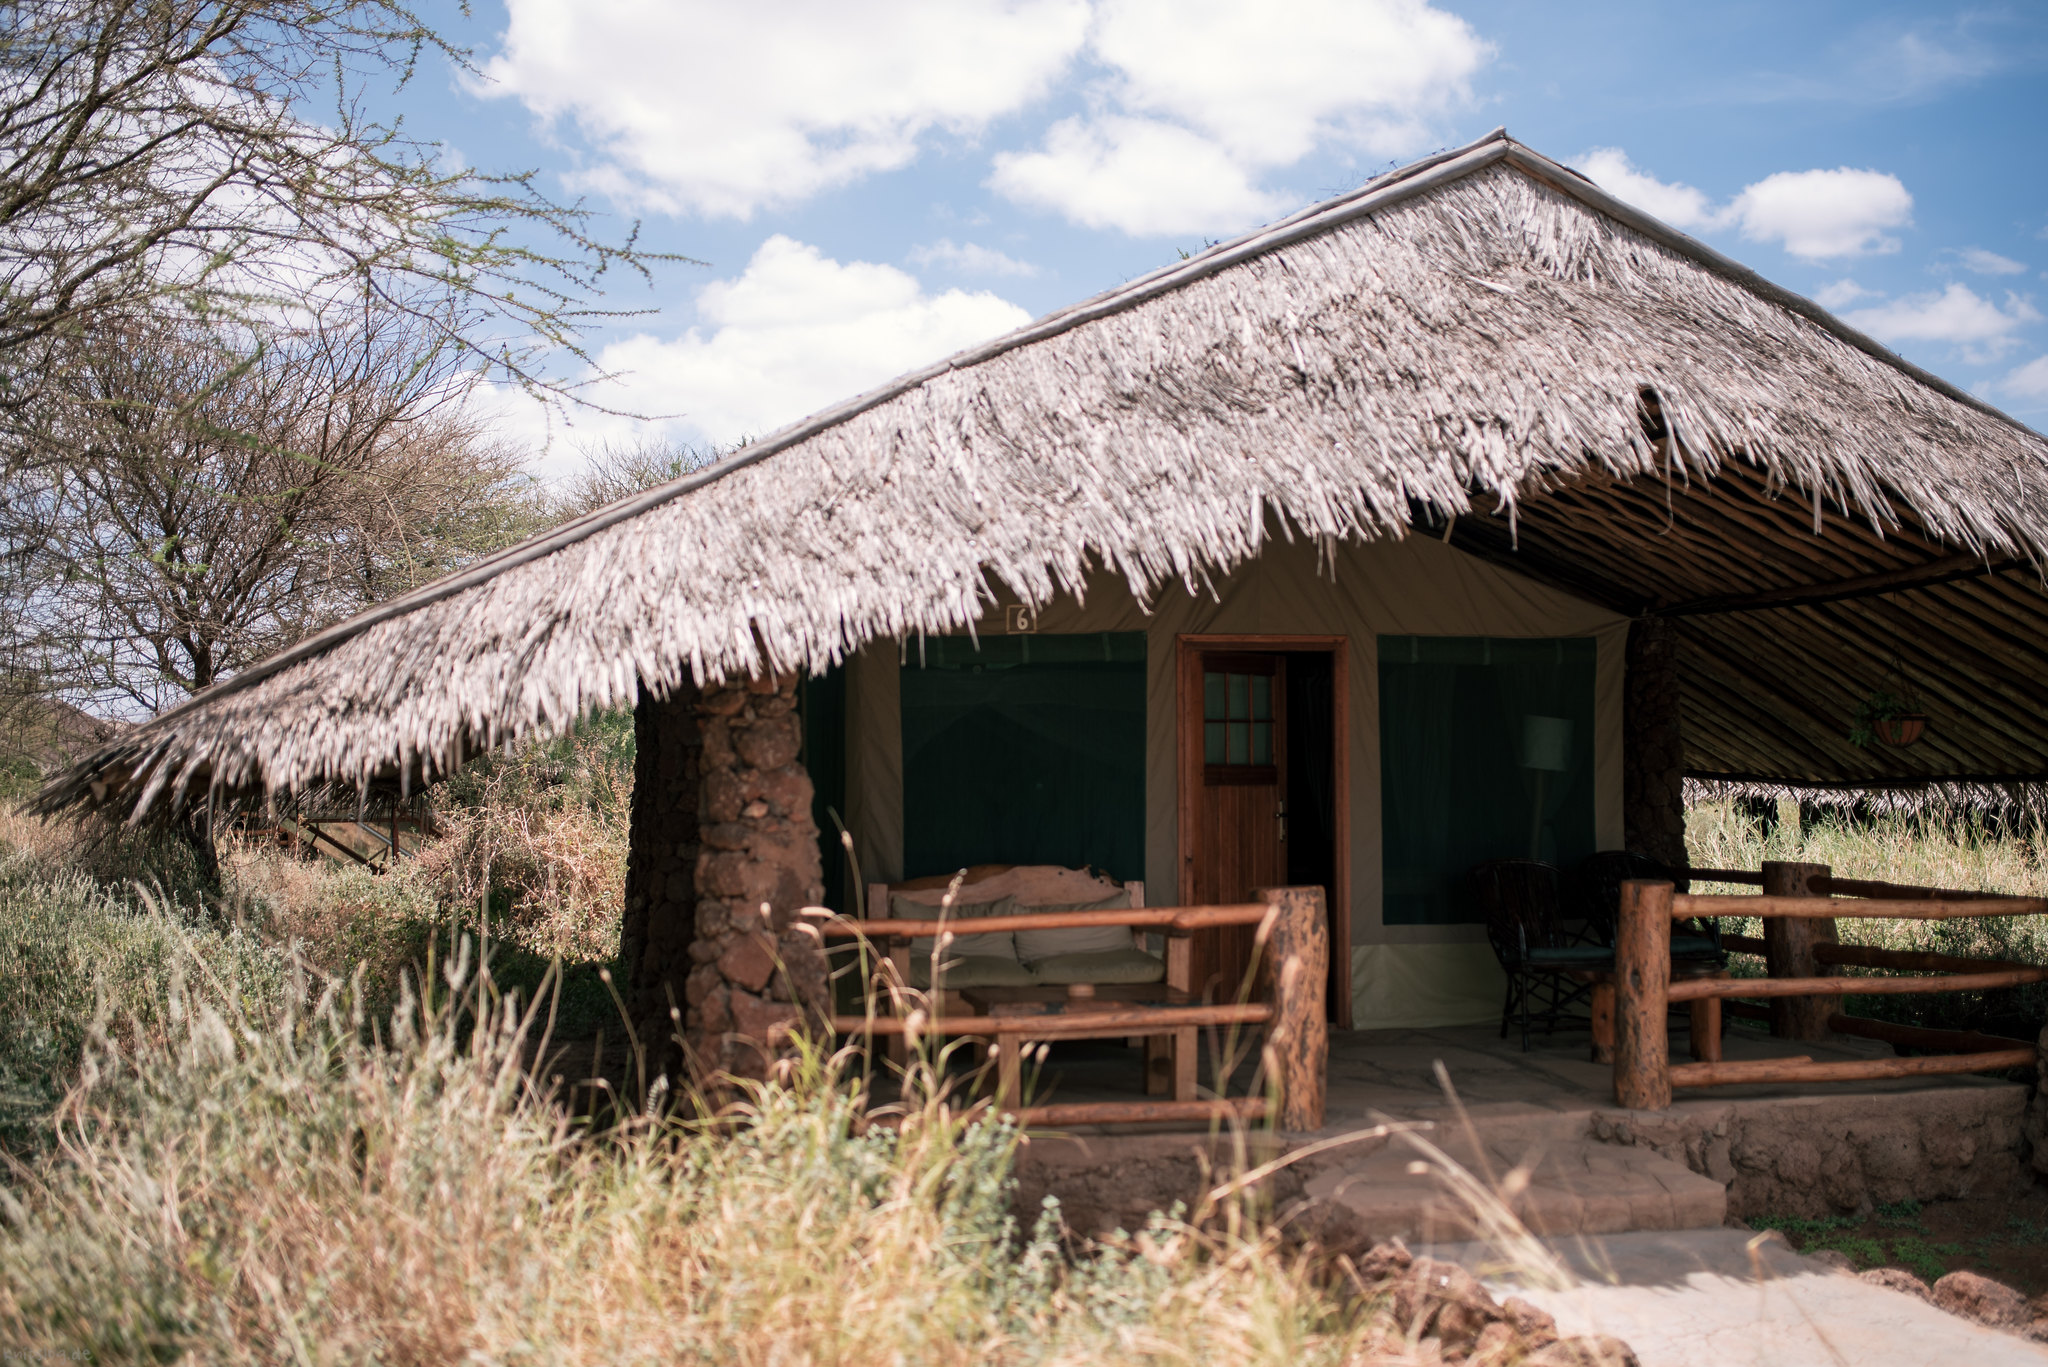 Kibo safari camp at the roof of the Kilimanjaro